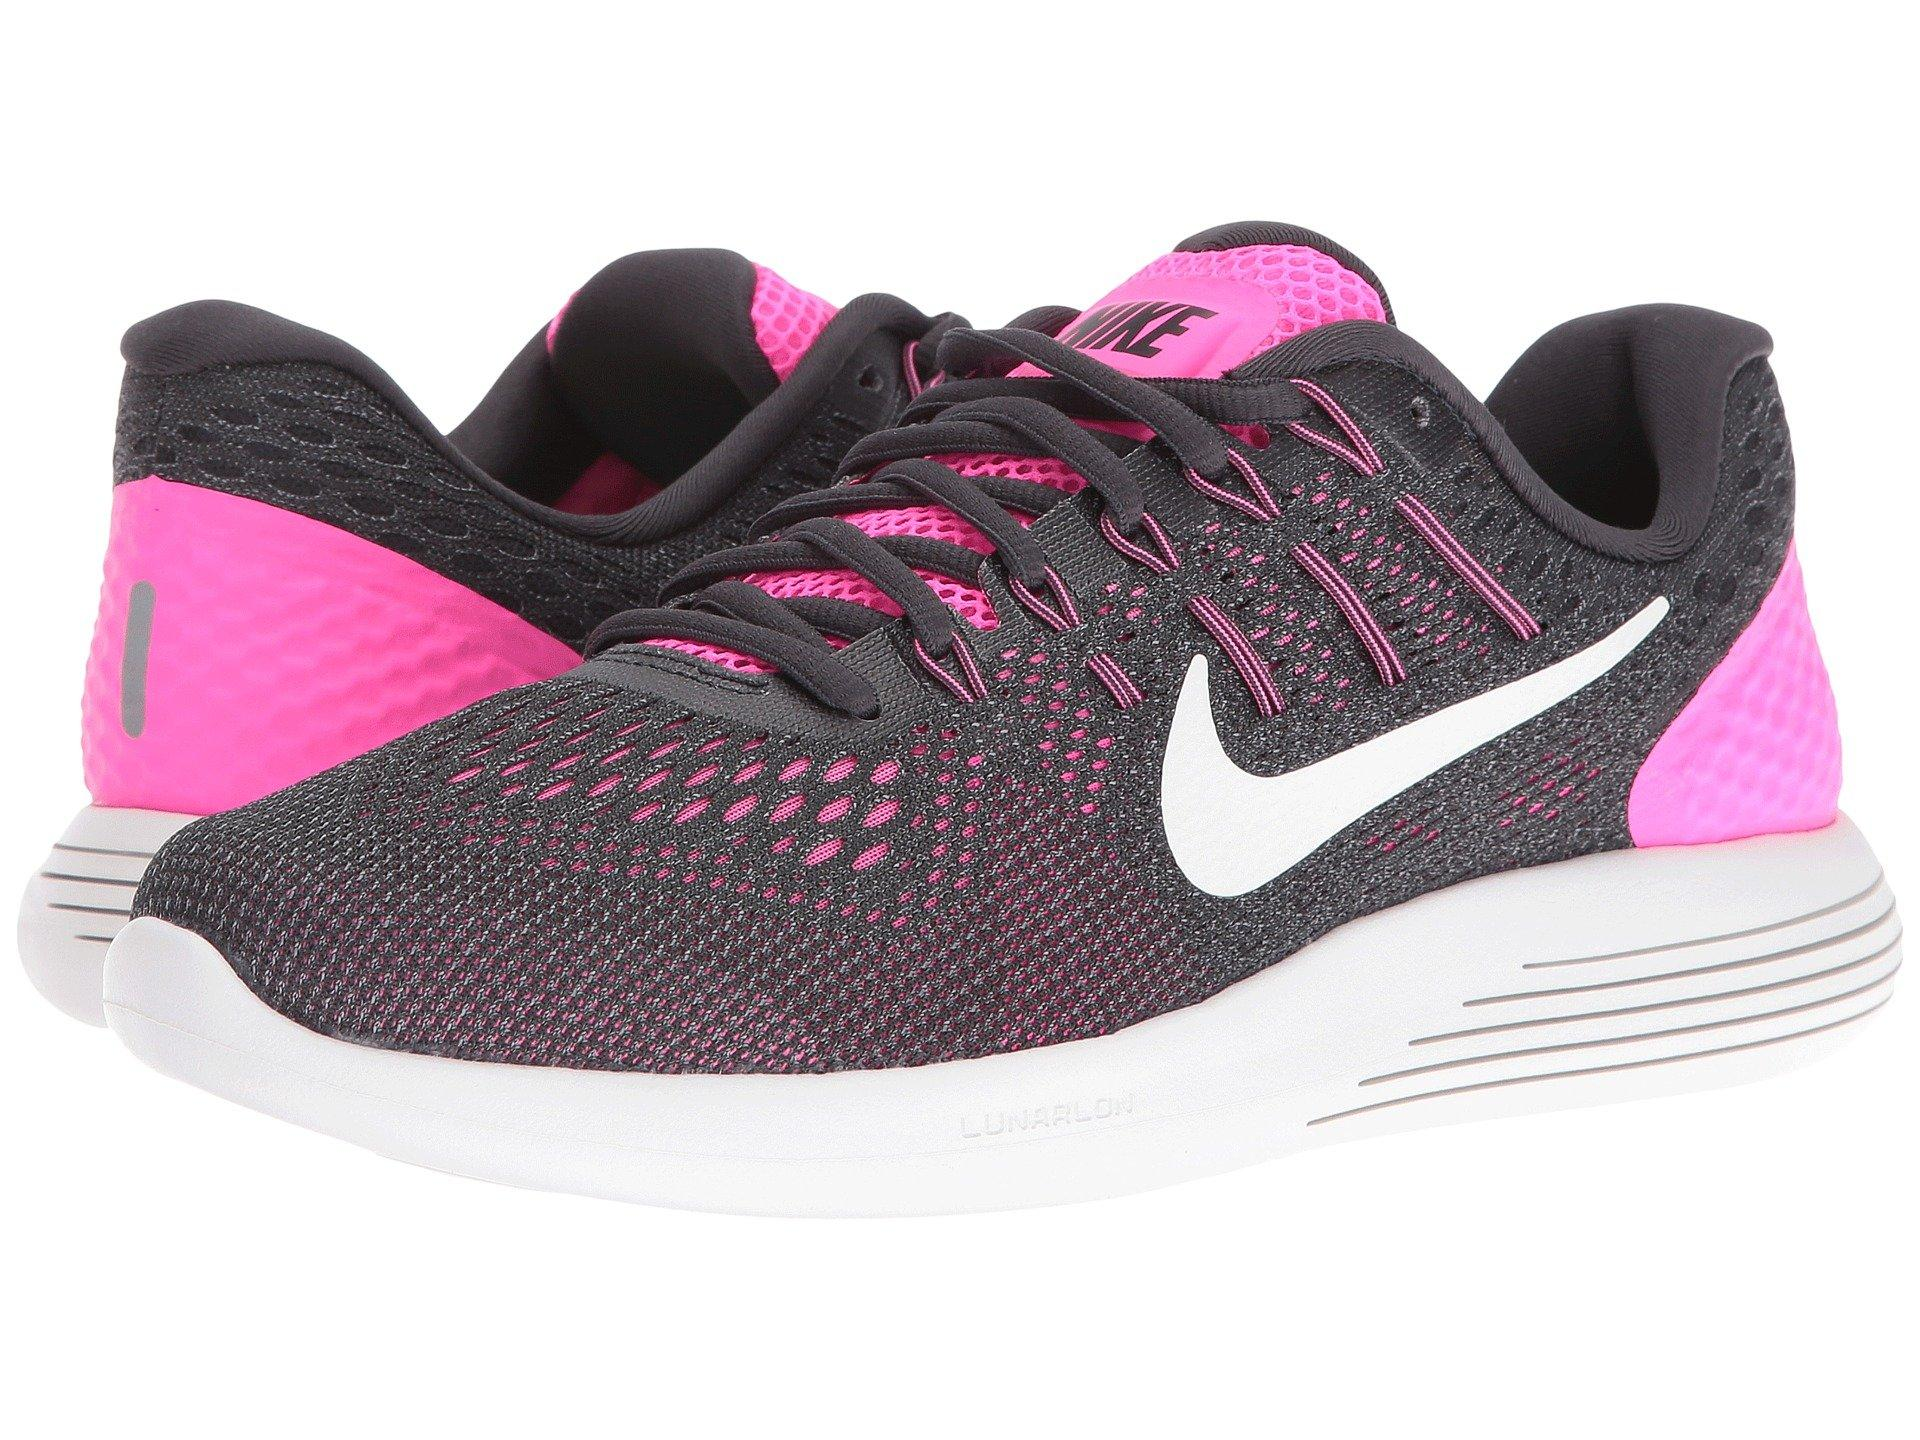 uk availability e3478 5f240 Nike Lunarglide 8, Pink Blast Anthracite Cool Grey Summit White